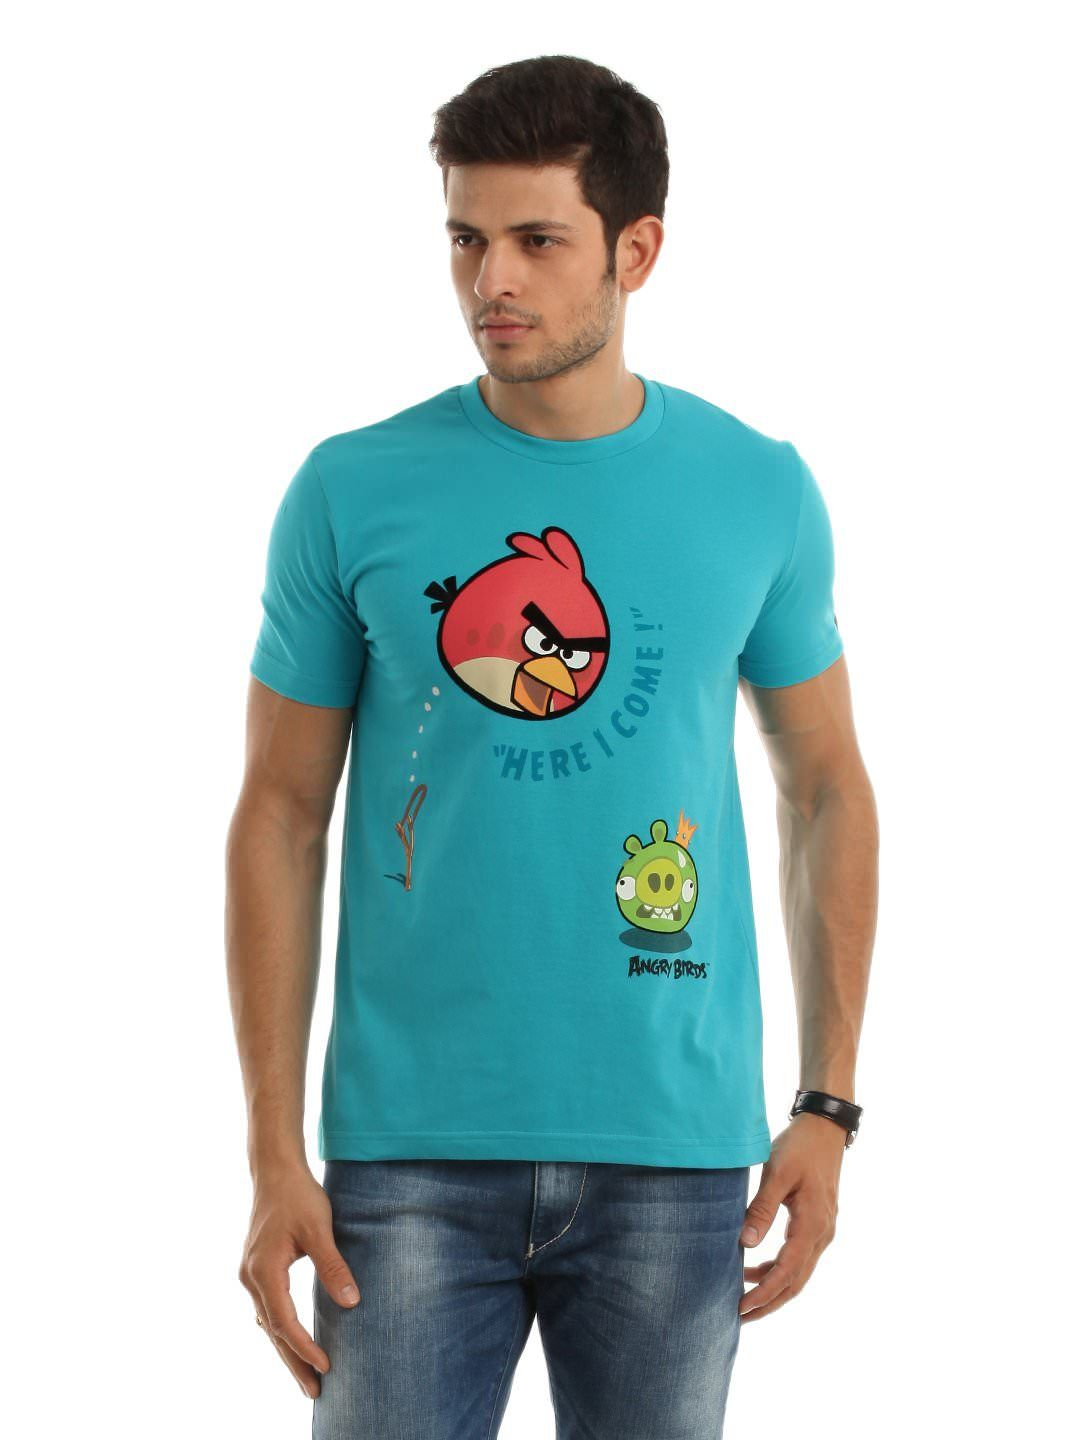 Design your t shirt myntra - Angry Birds Men Turquoise Blue T Shirt Myntra